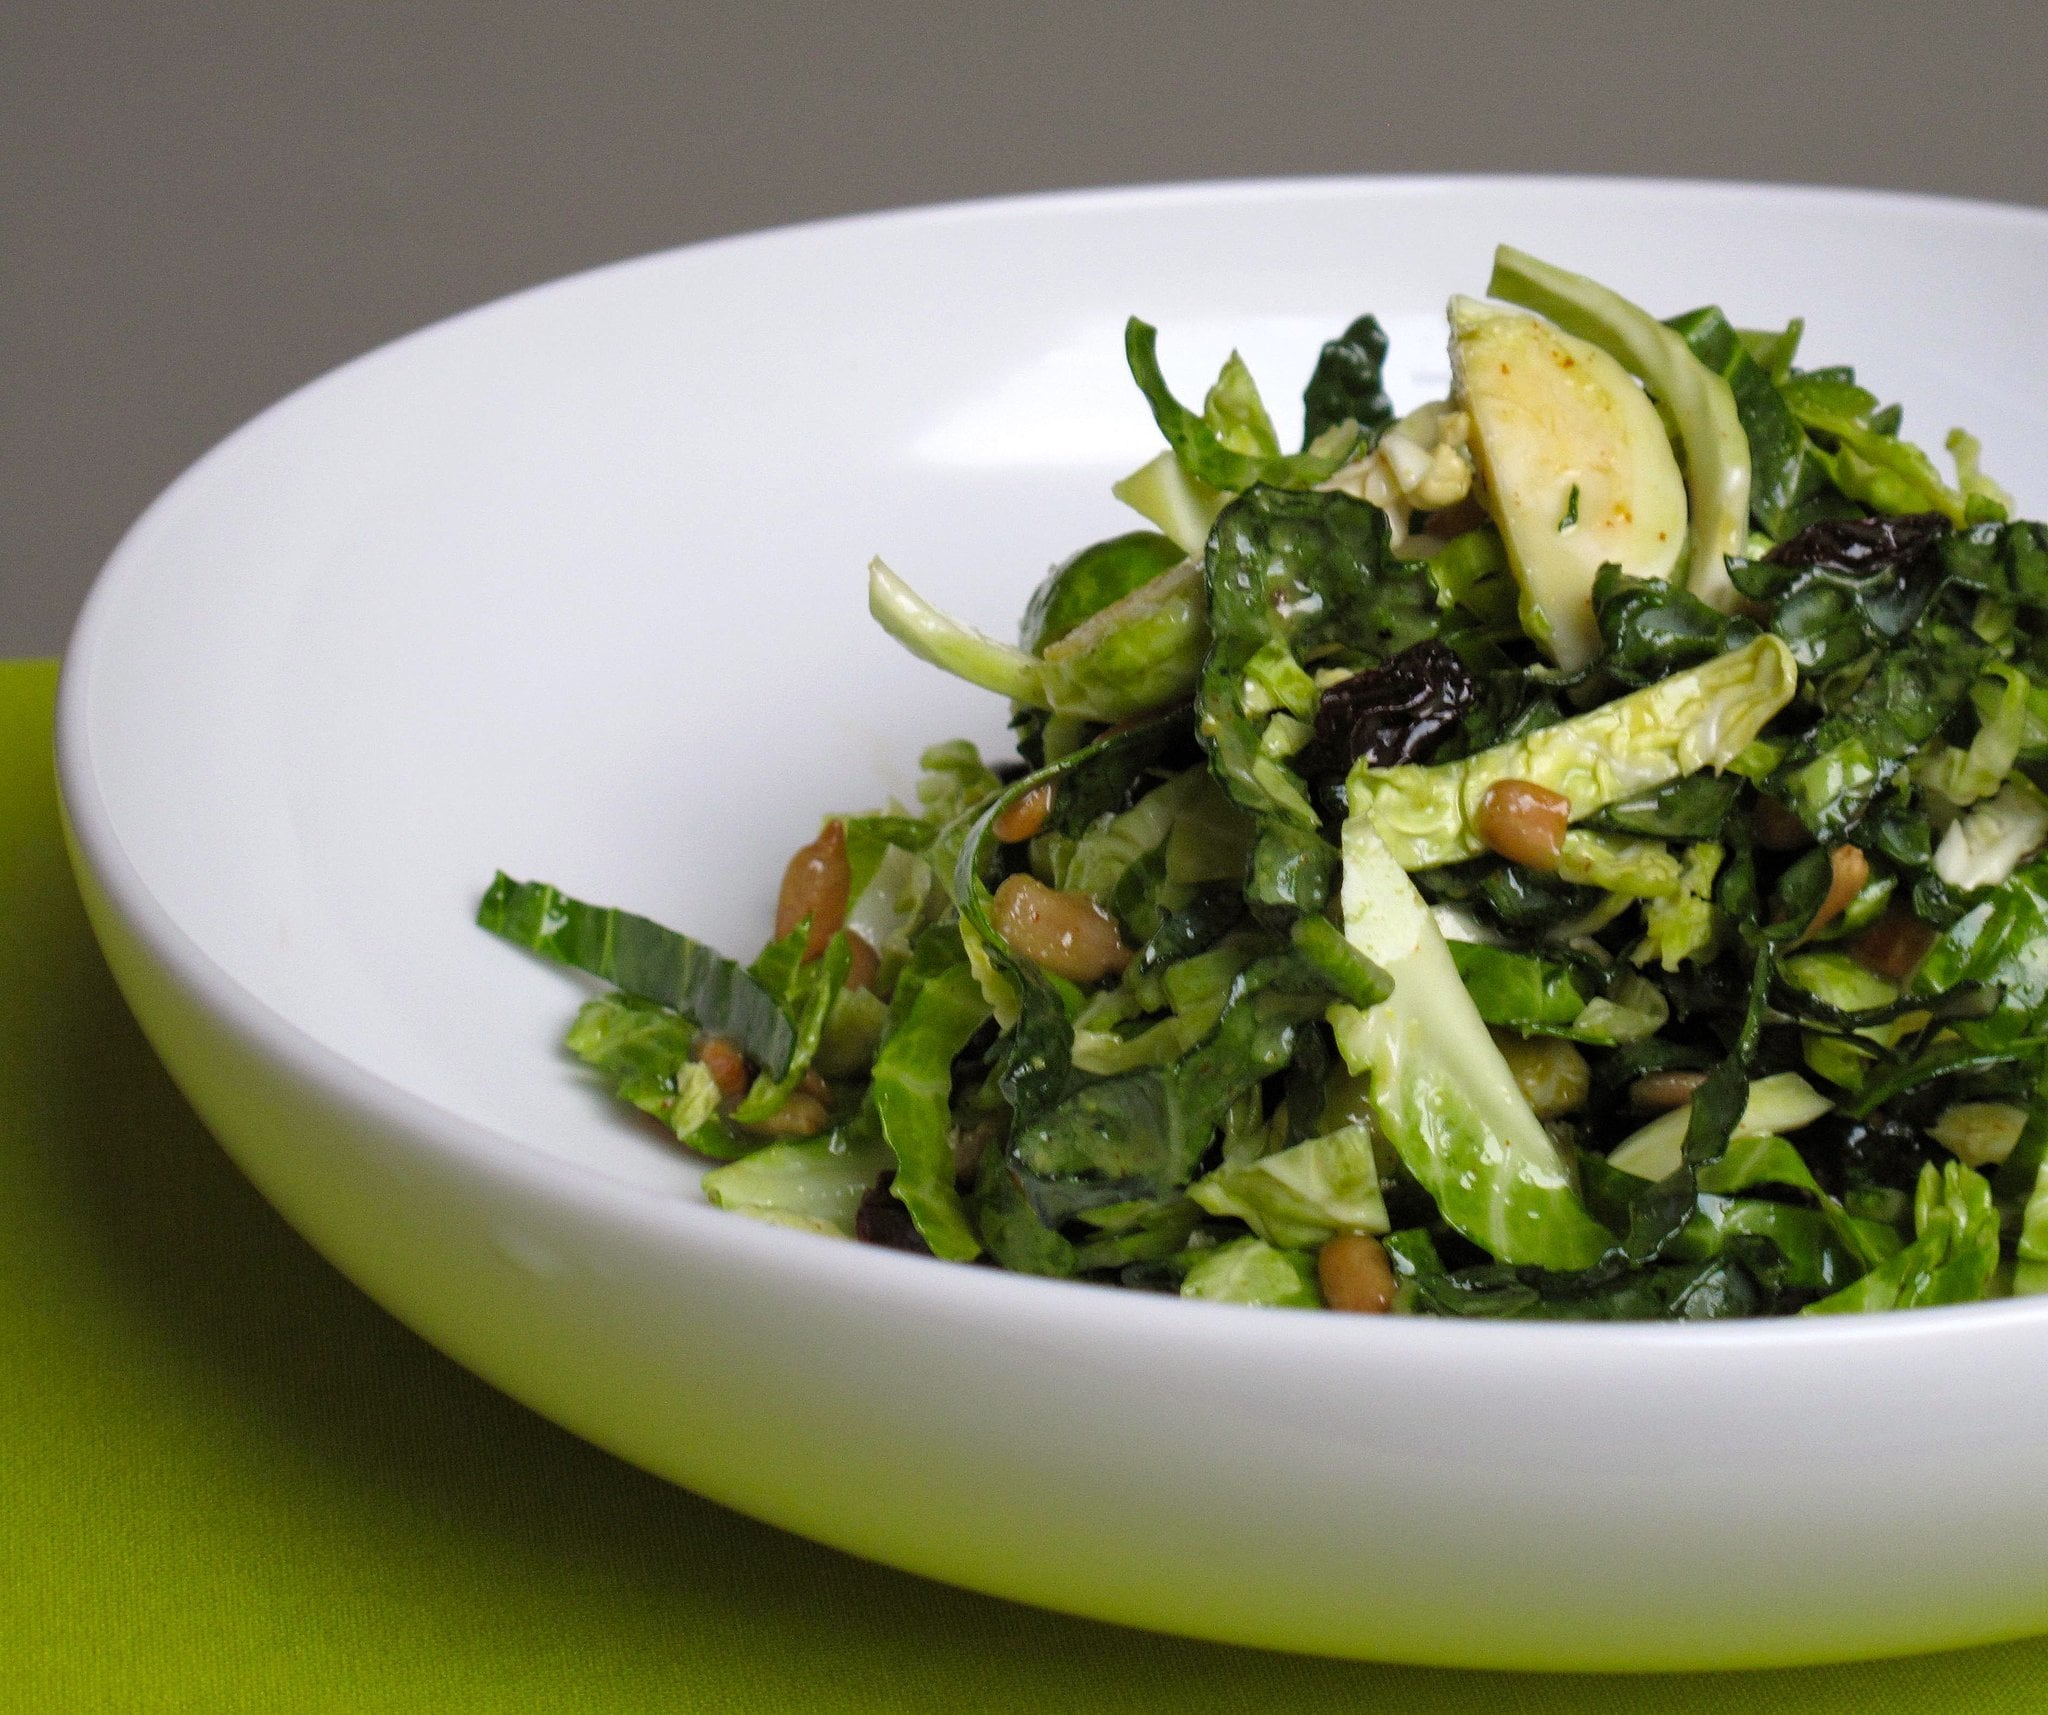 Shredded brussels sprouts salad a halloween feast for for Shredded brussel sprout salad recipe